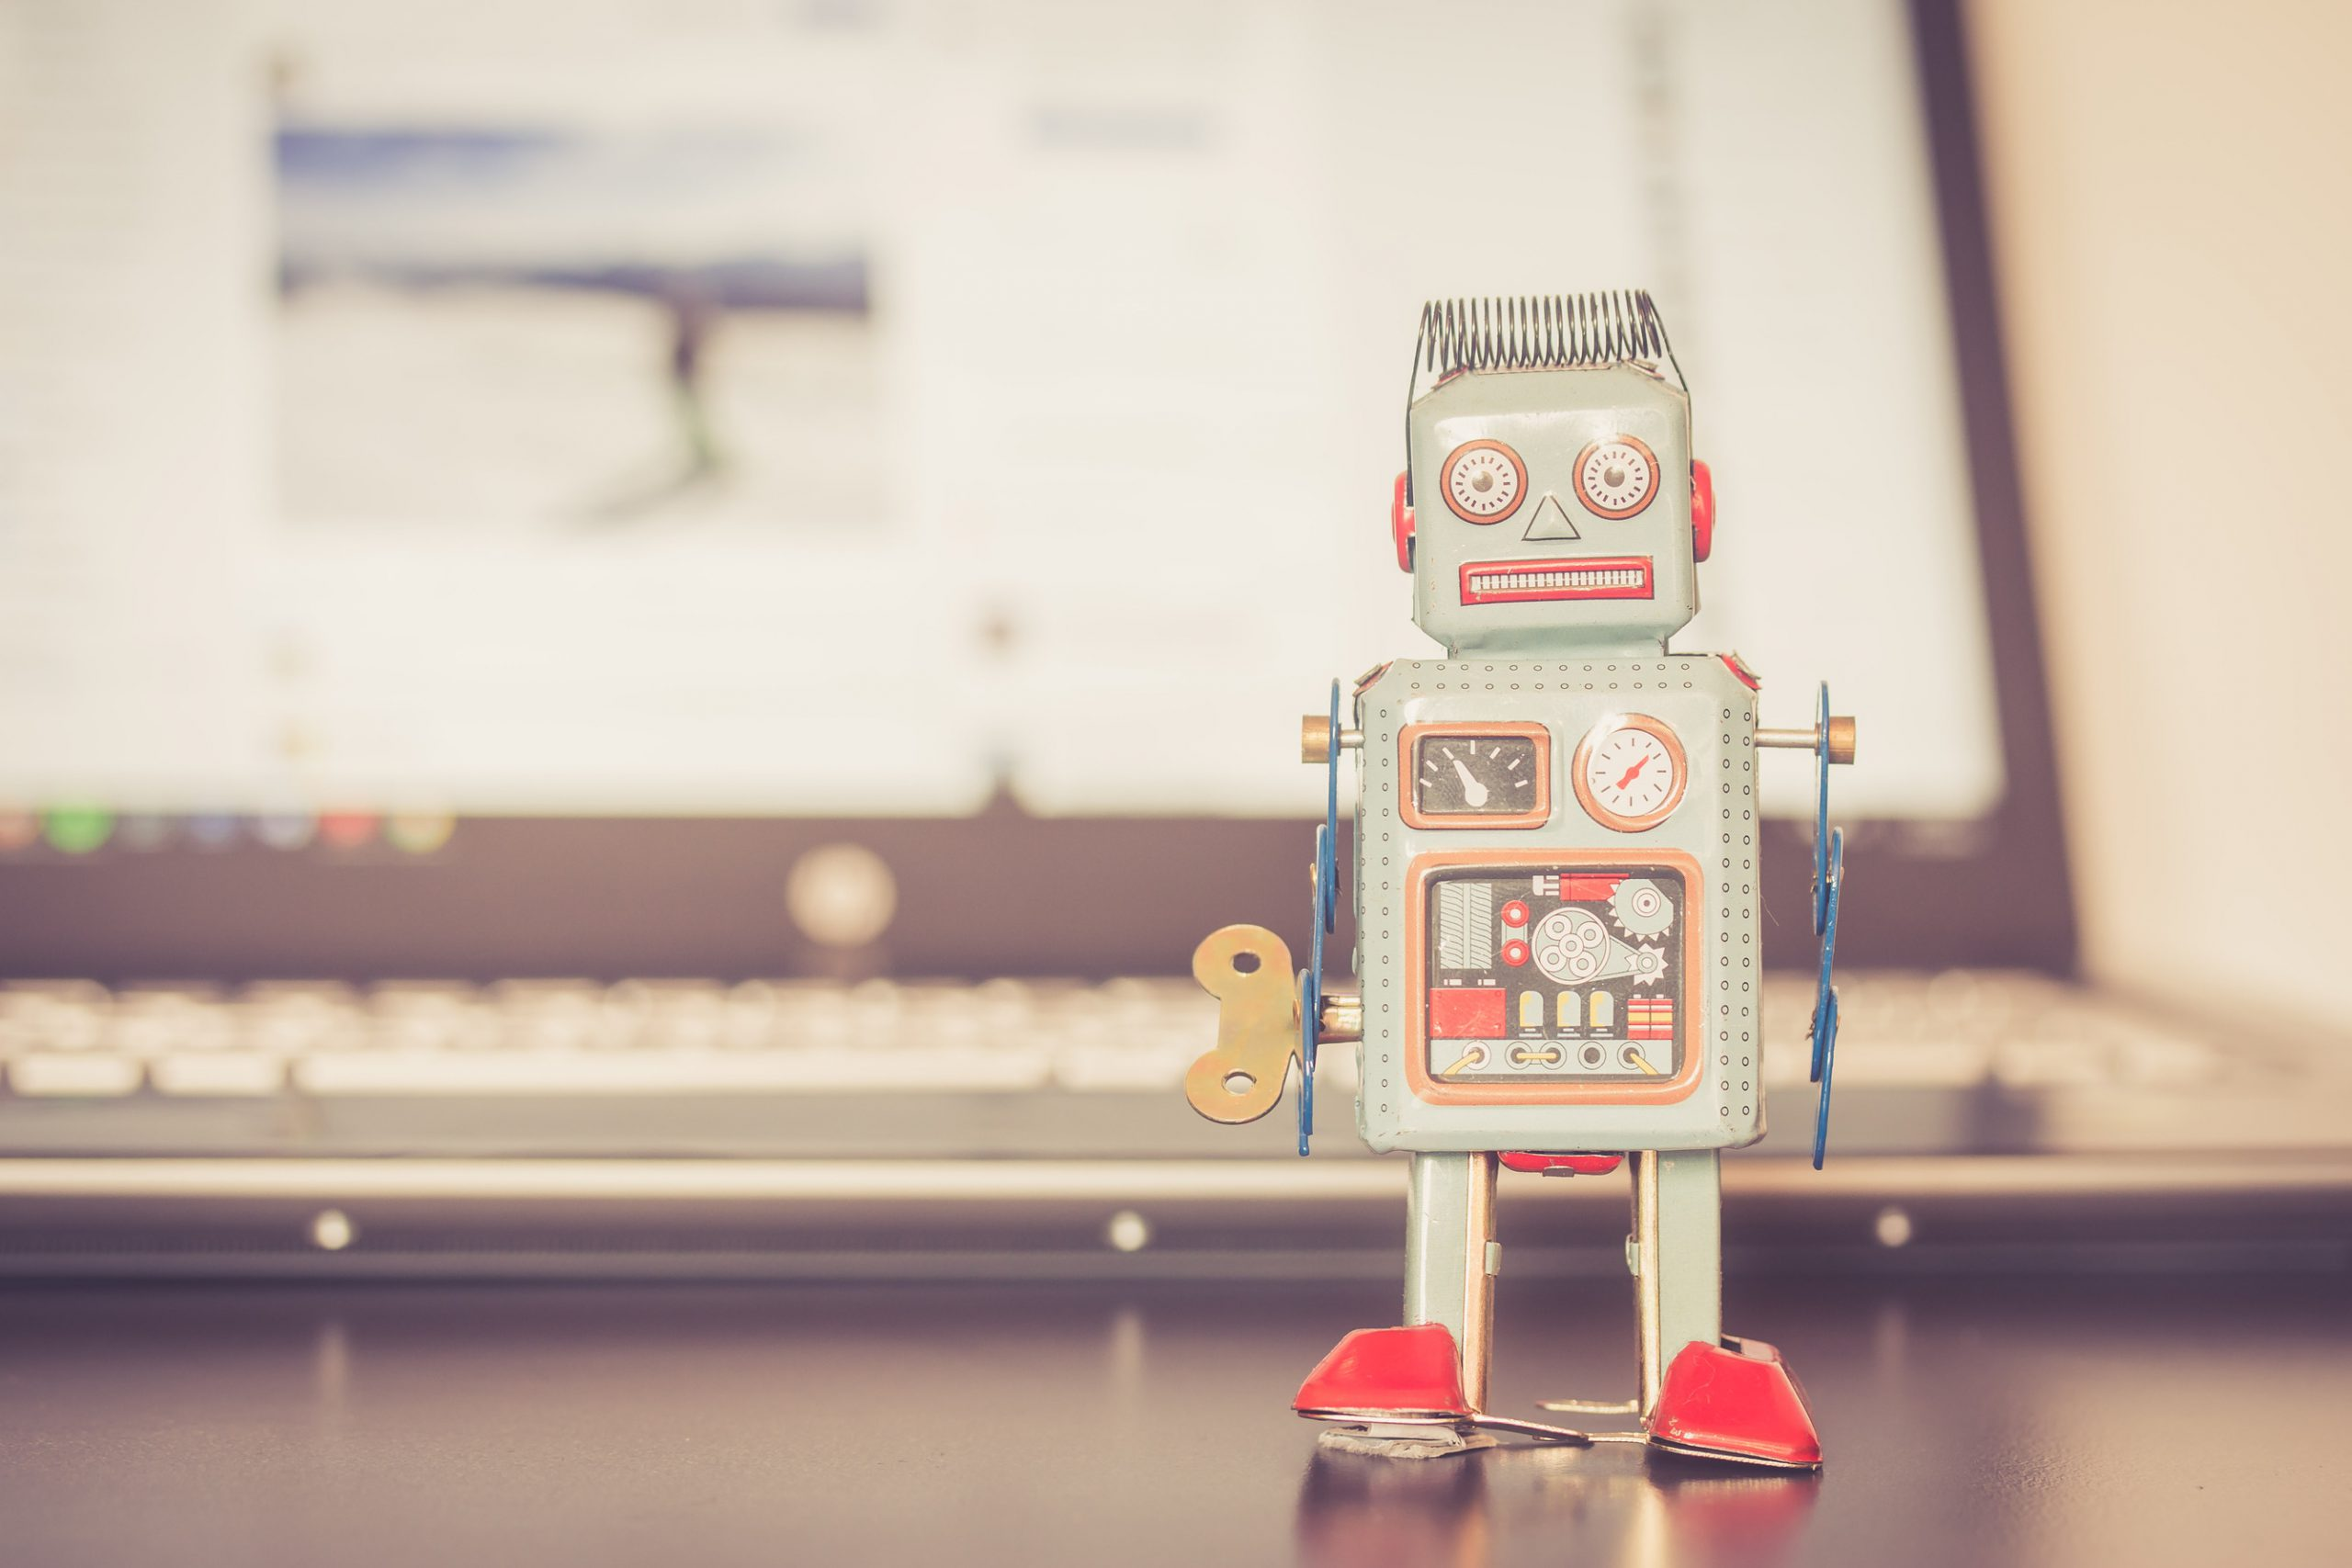 RPA can lead to technical debt and unforeseen issues